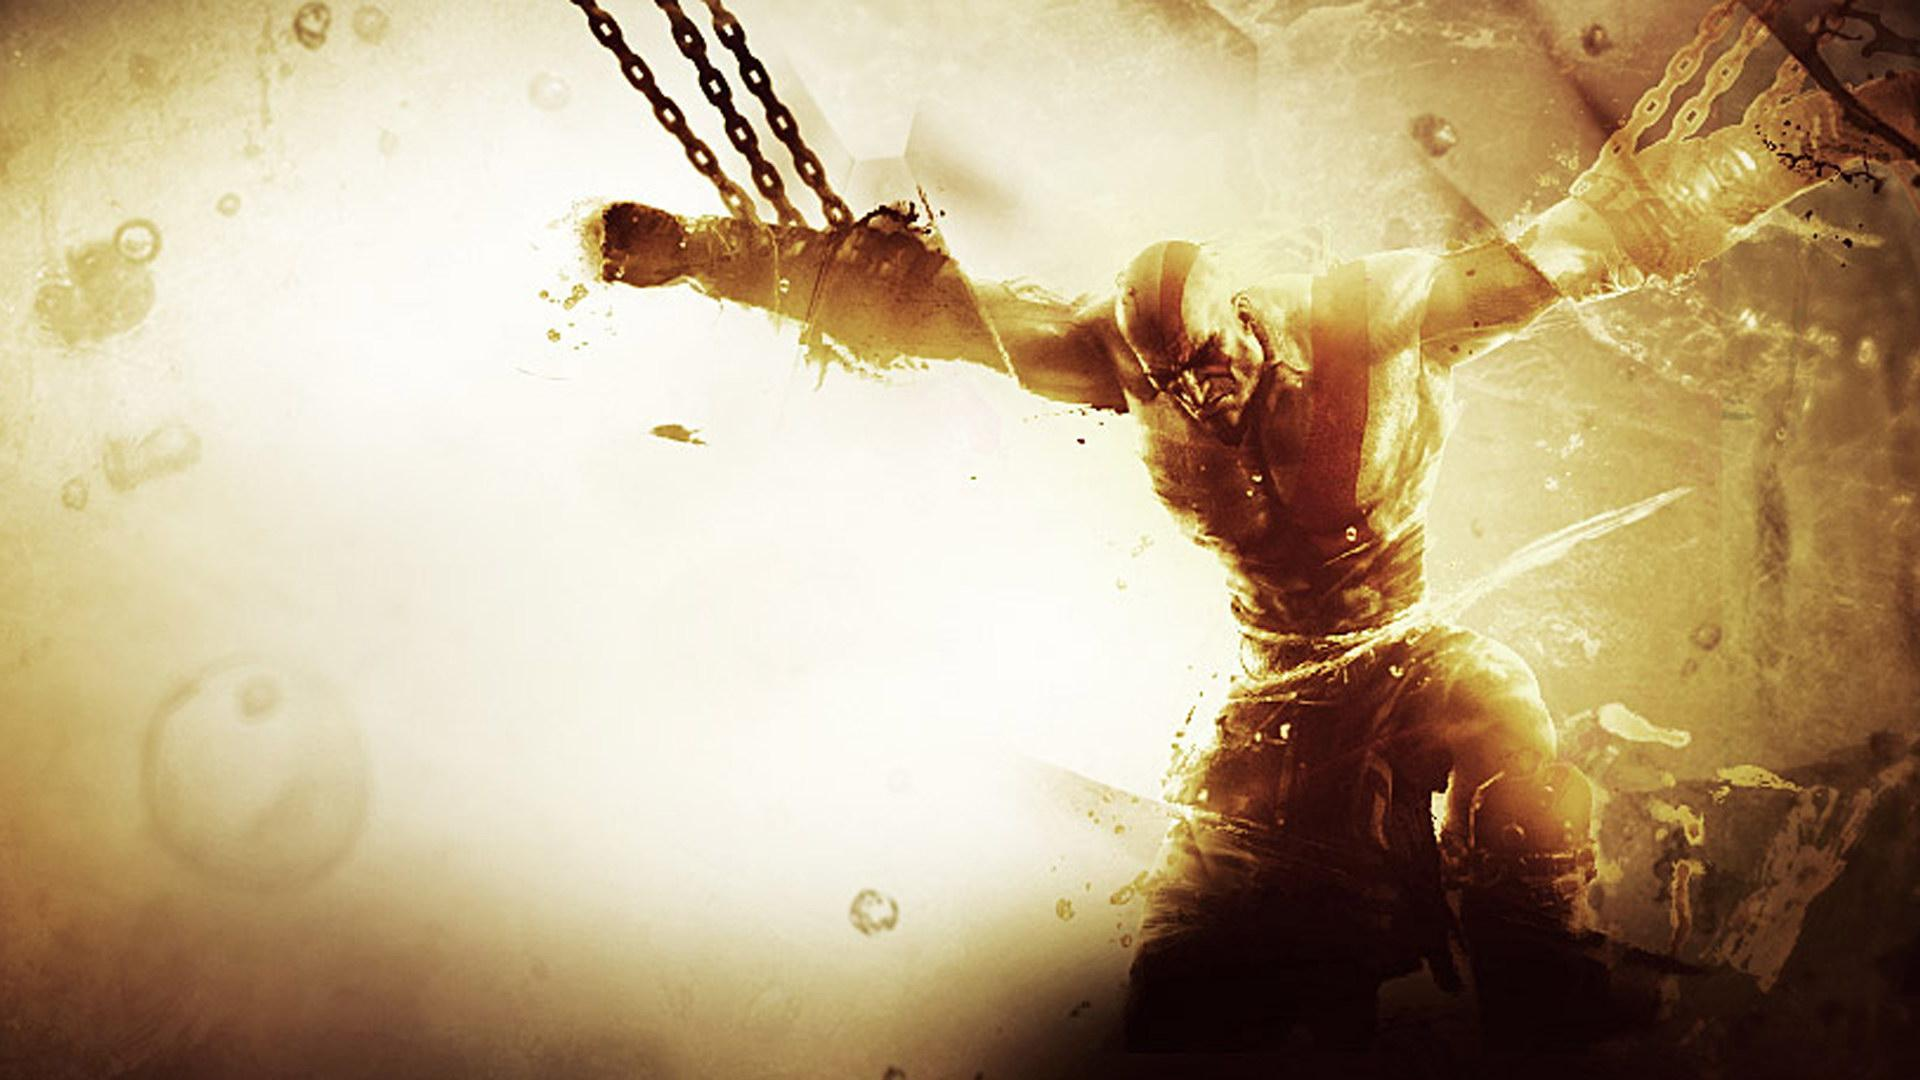 God Of War Wallpaper For Android Apk Download